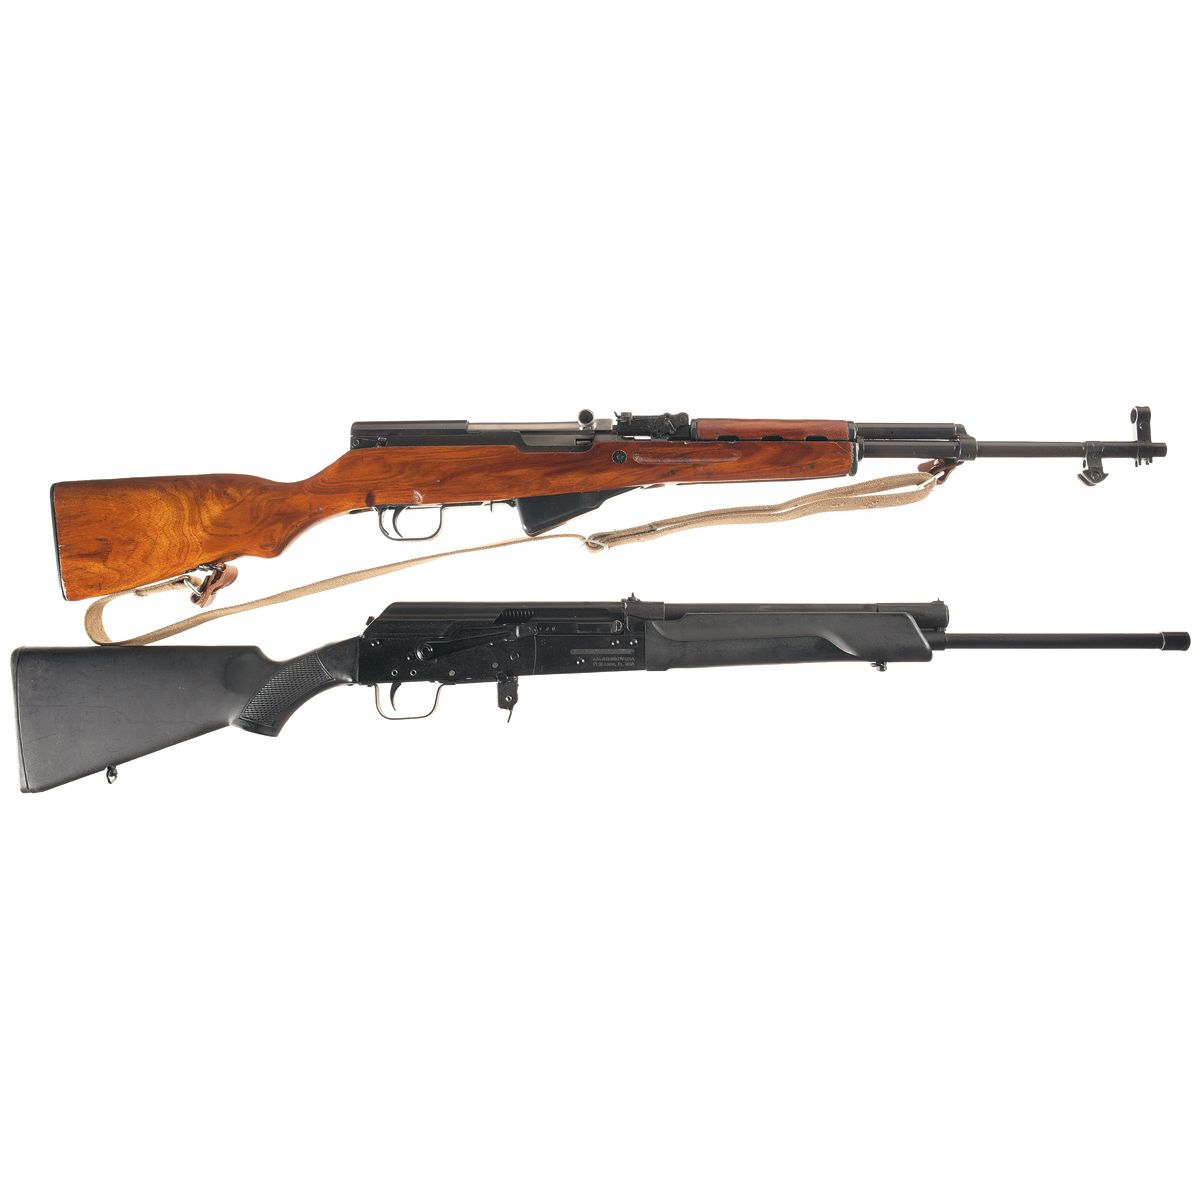 Norinco Mail: Two Semi-Automatic Long Guns -A) Chinese Norinco SKS Semi